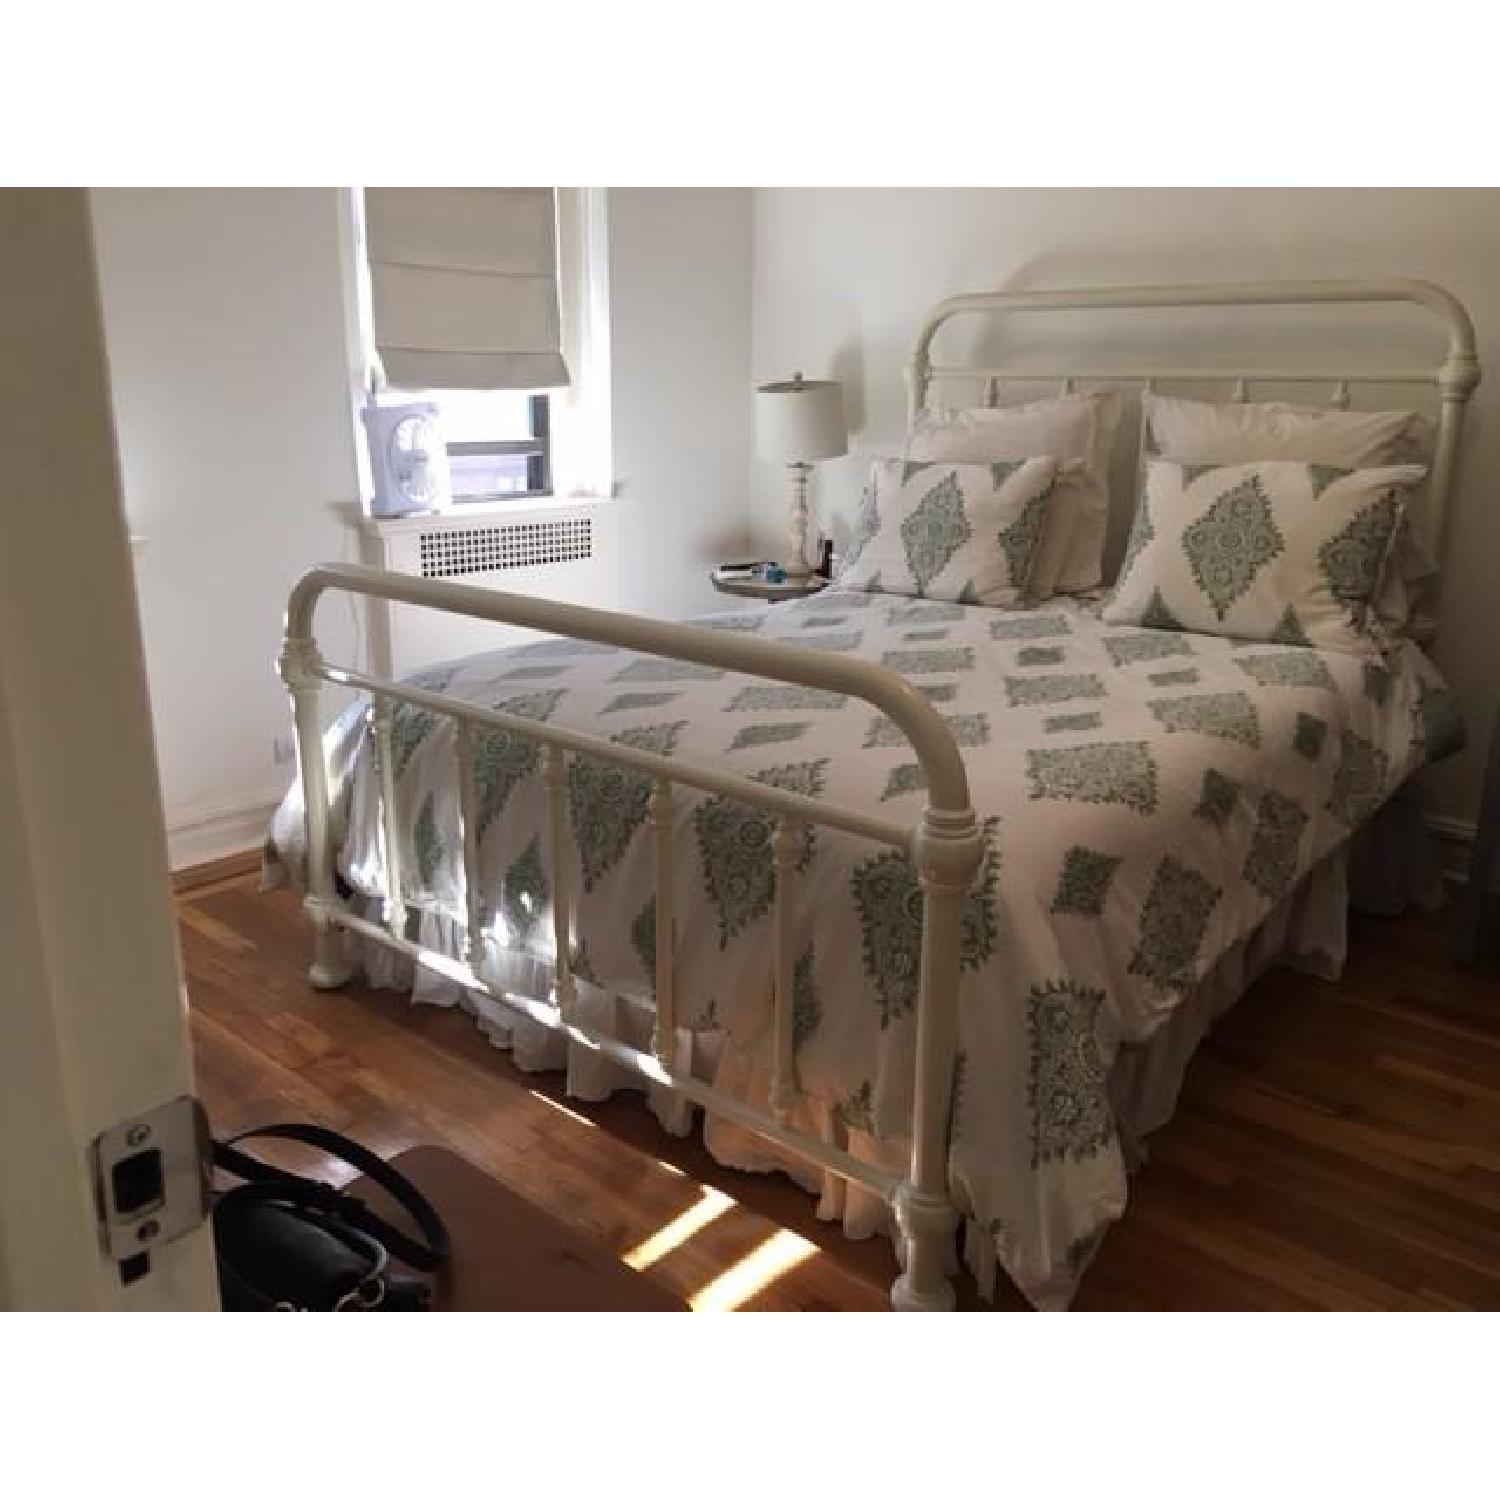 Pottery Barn Coleman White Iron Queen Bed Frame - image-3